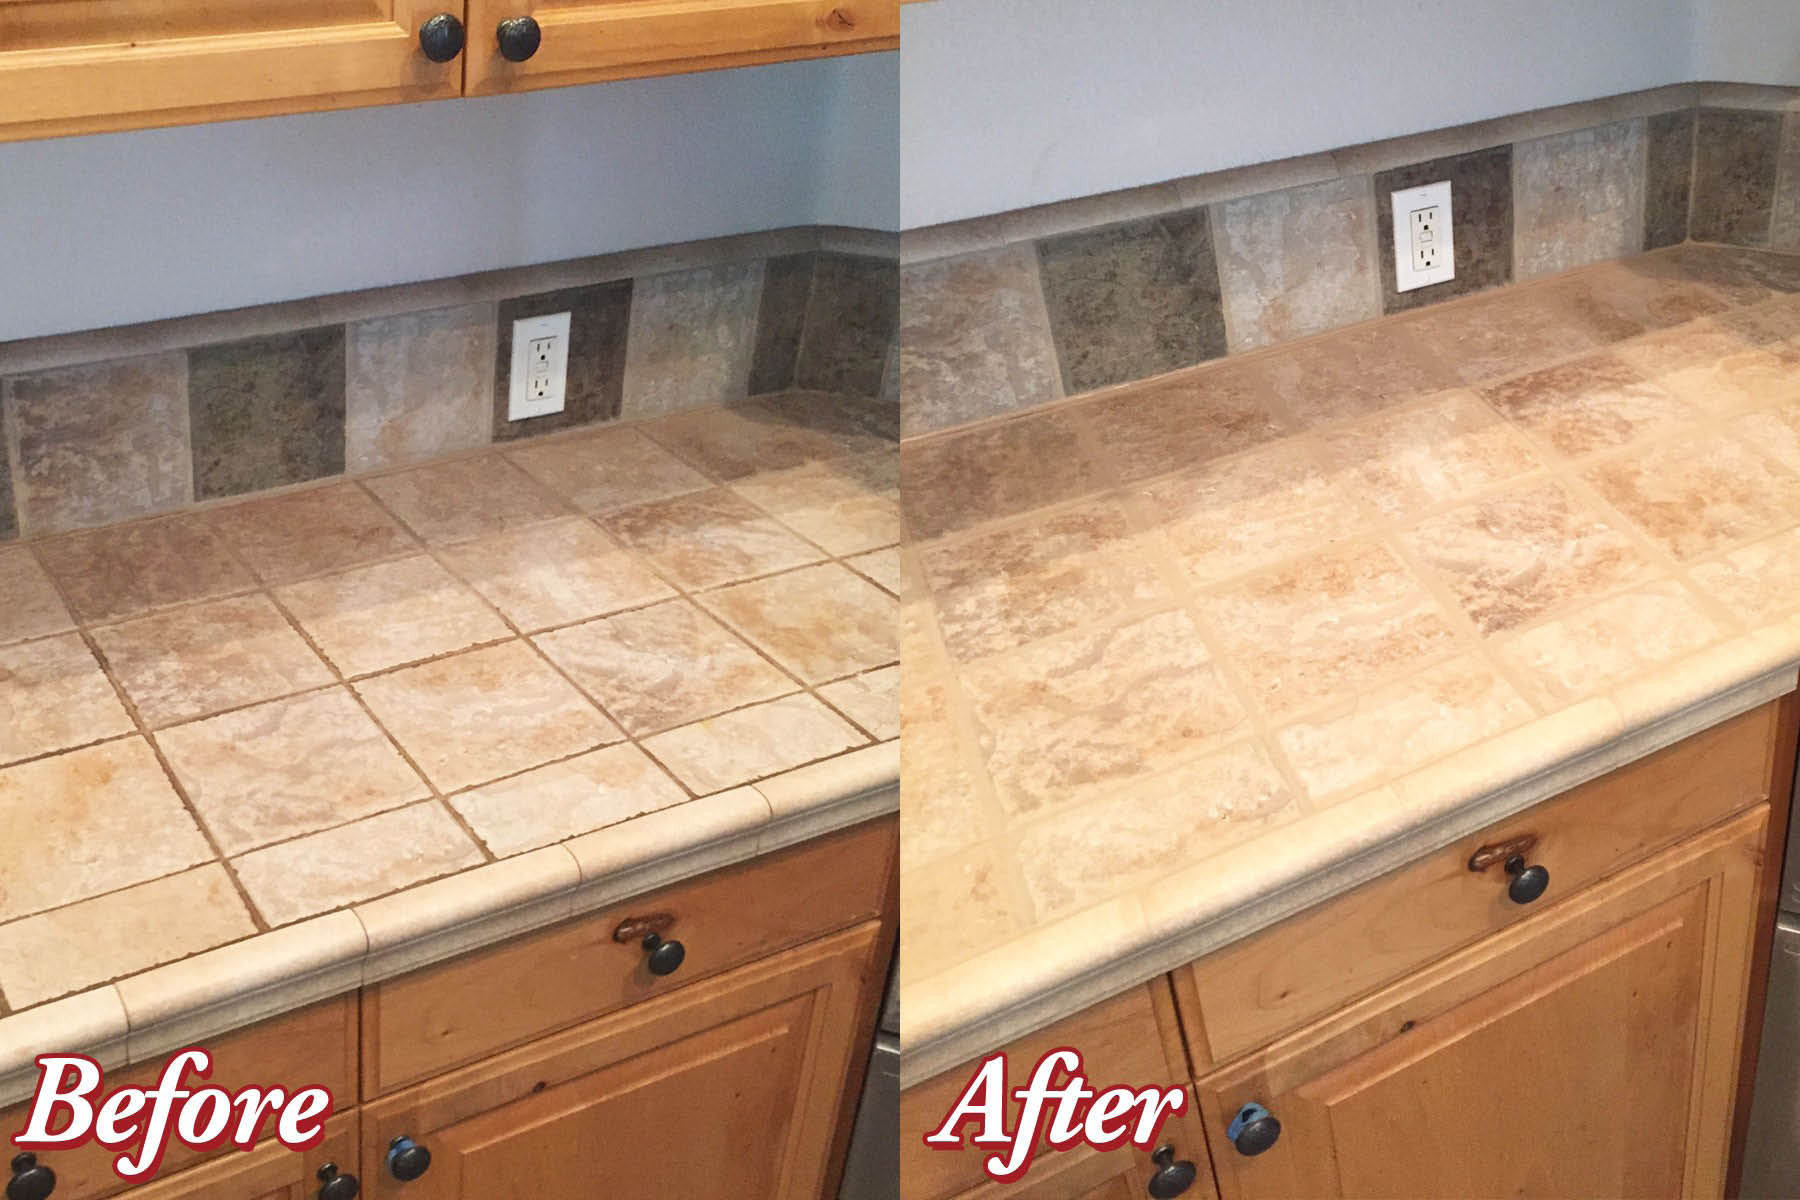 See the difference our tile cleaning and sealing can make